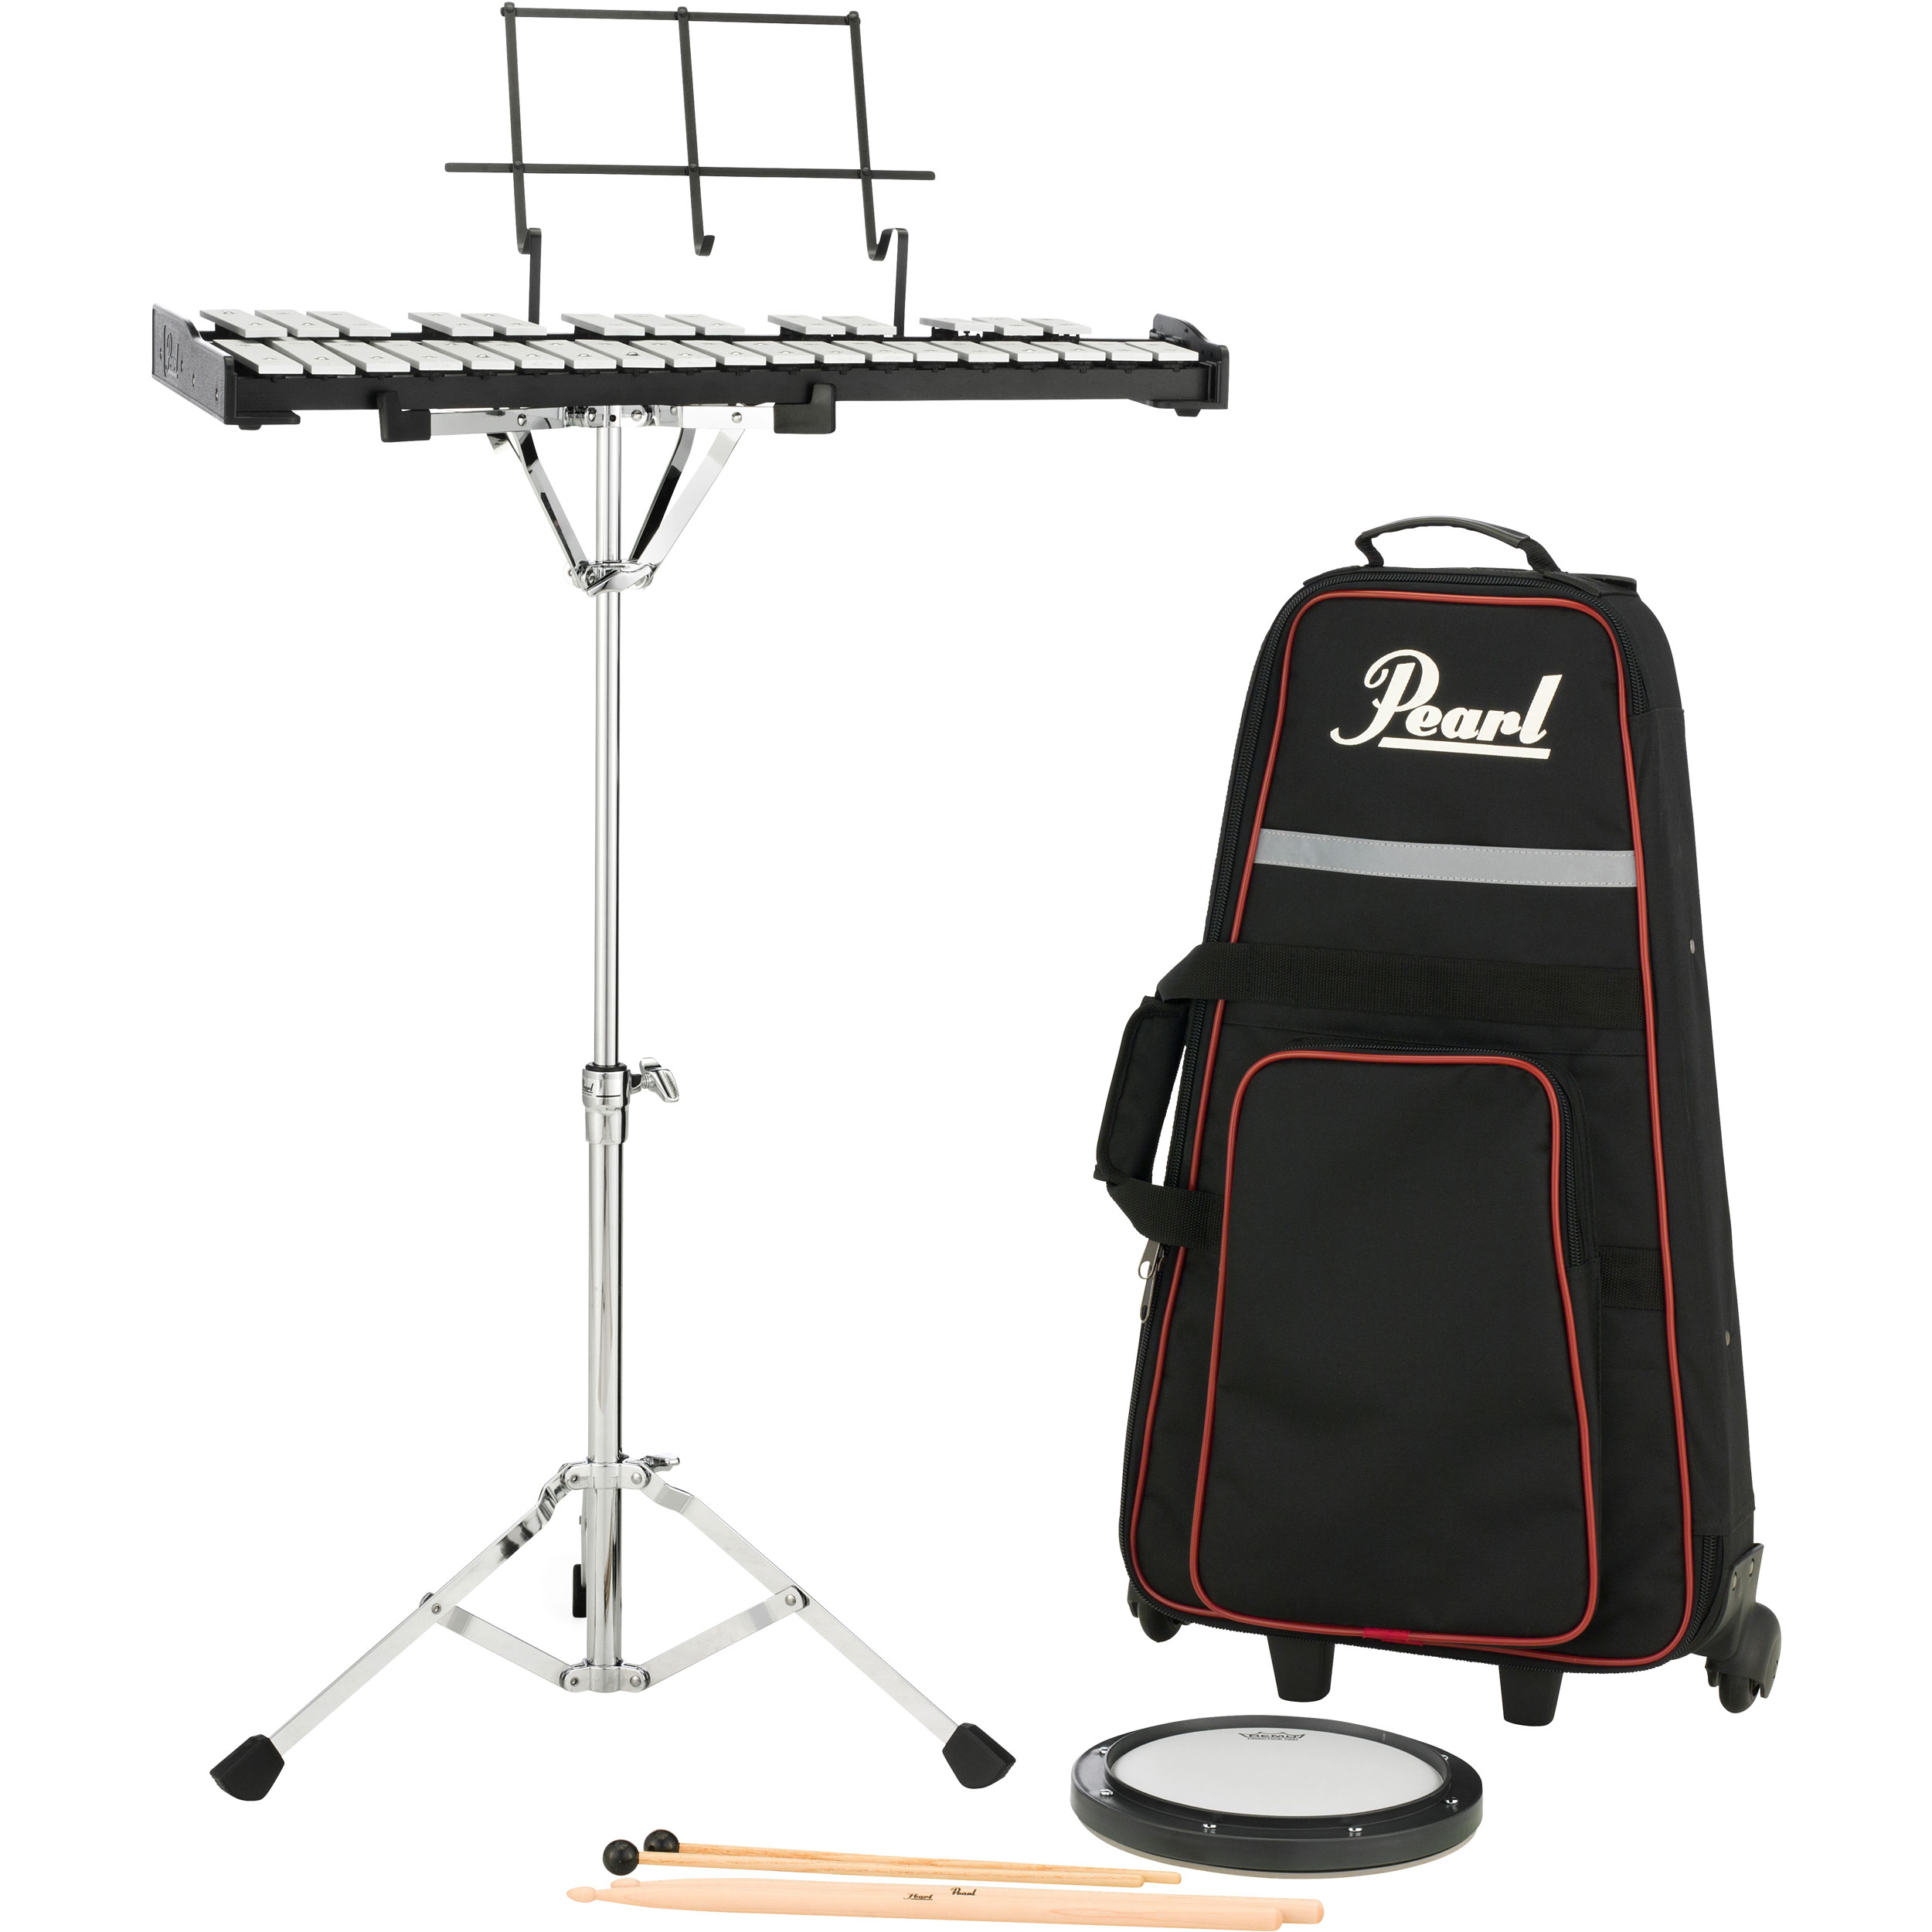 Pearl student percussion bell kit with rolling bag pk910c for Yamaha student bell kit with backpack and rolling cart